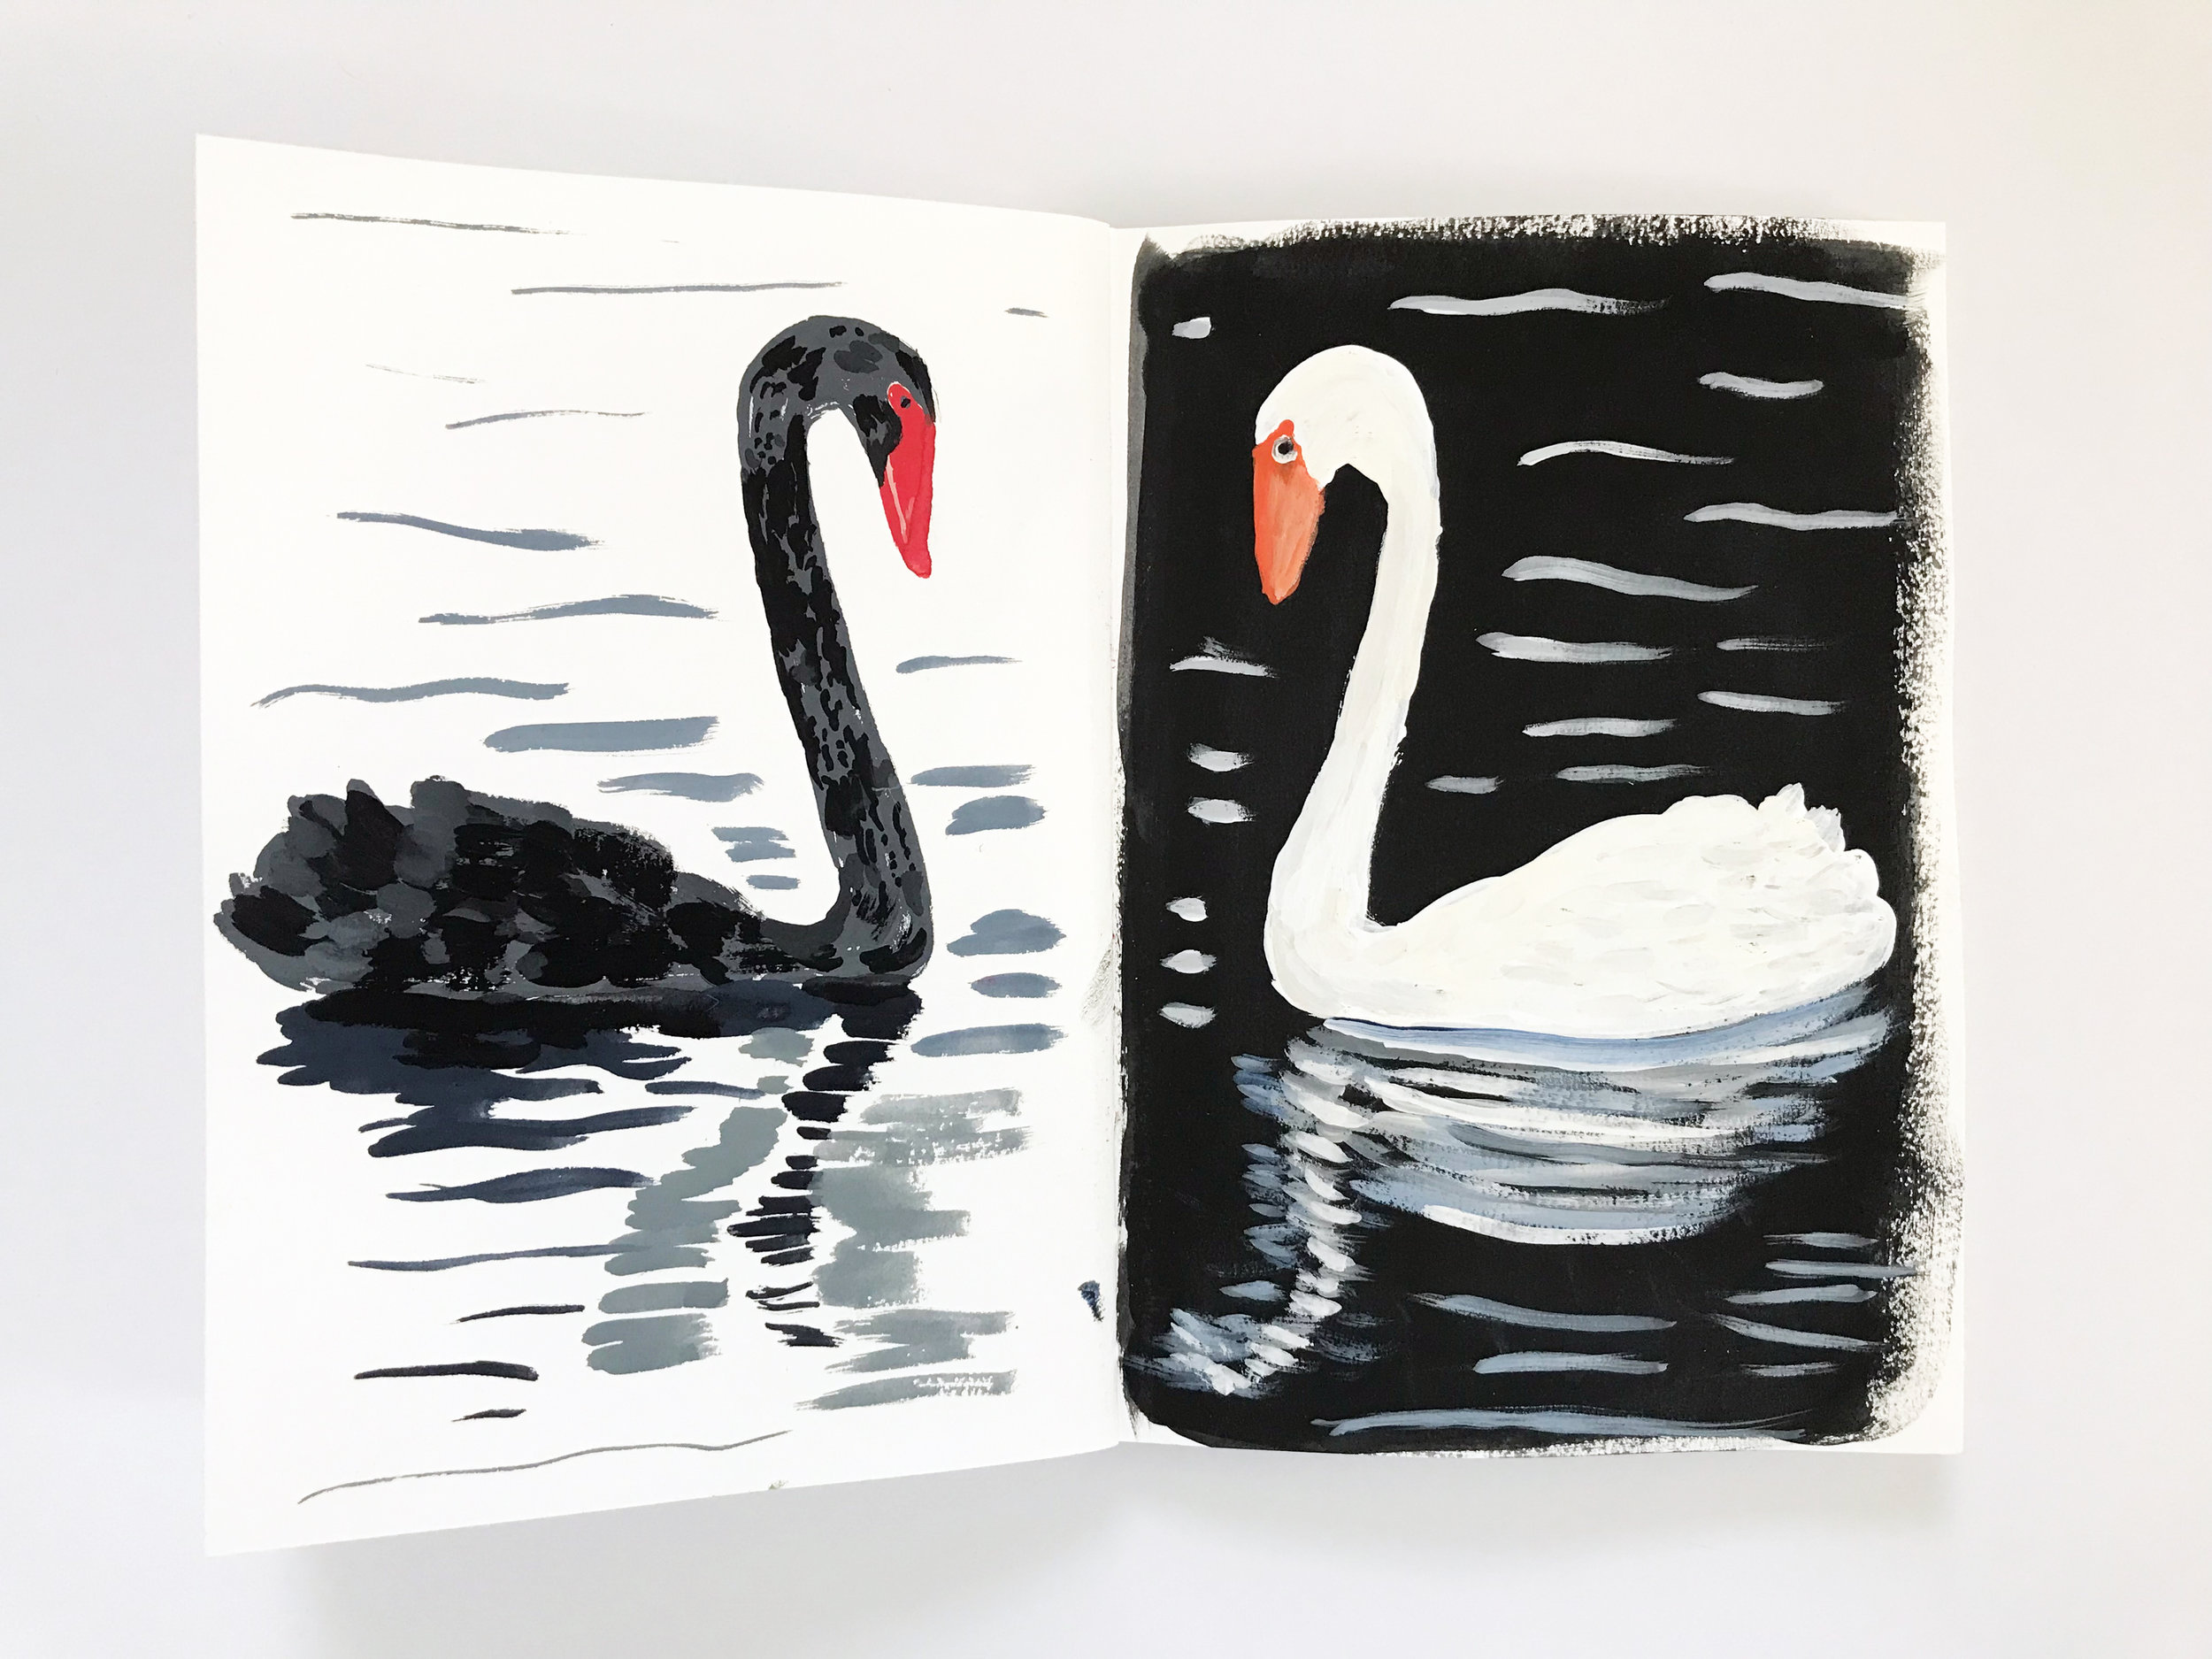 a page from my second collaborative Sketchbook with Dana Barbieri (my swan is on the right)